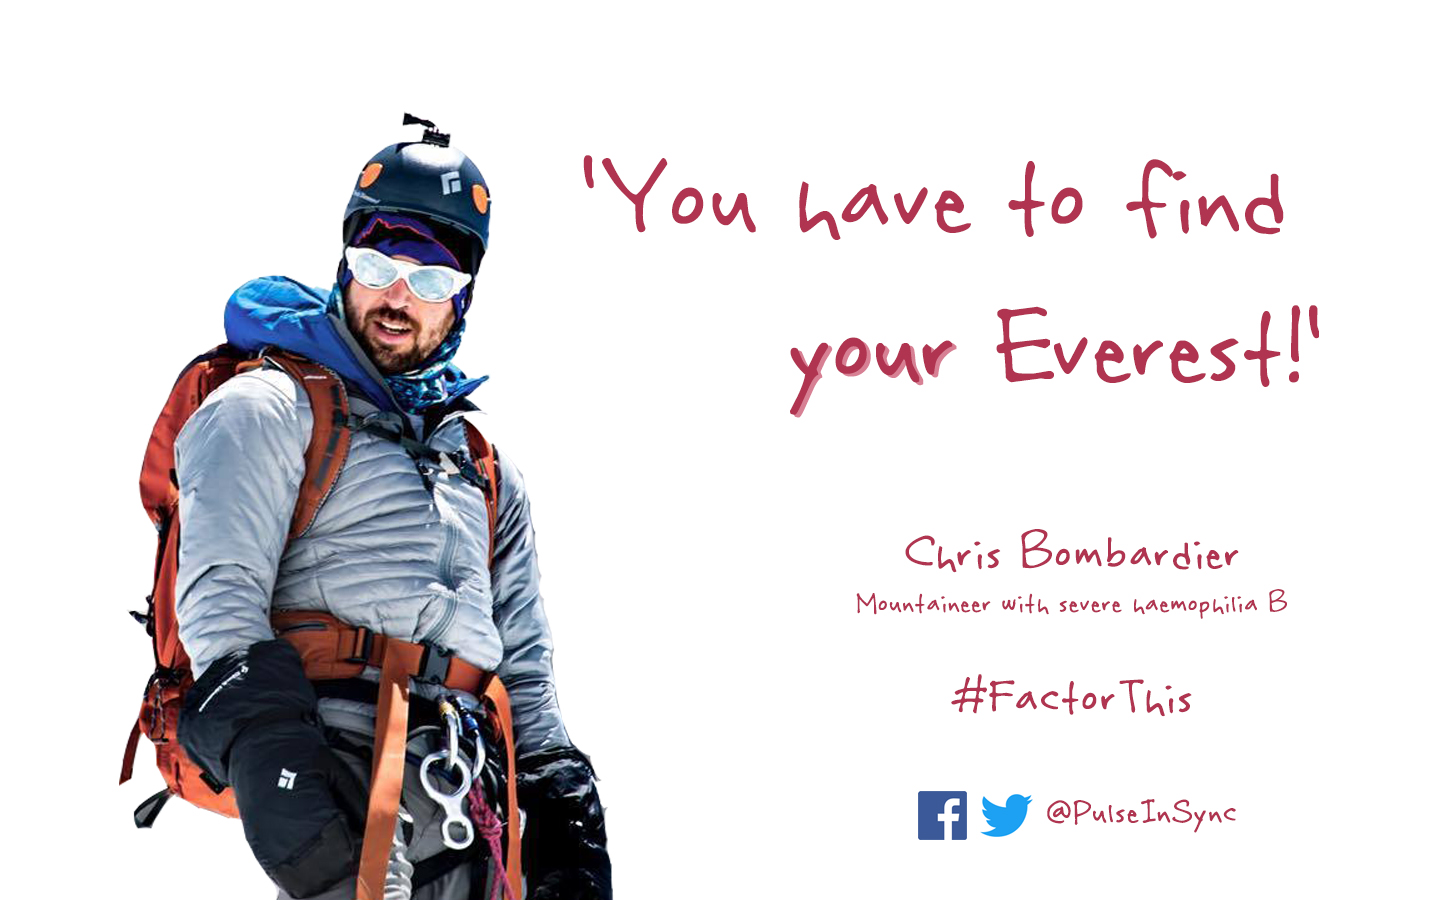 Chris Bombardier Factor This! feature image pt.2